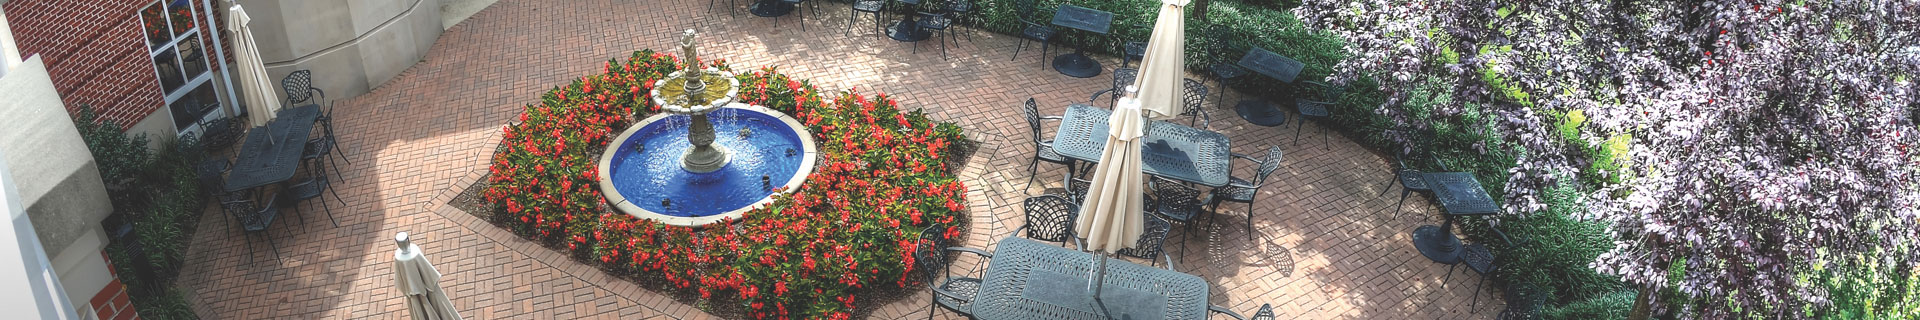 community garden and outdoor seating